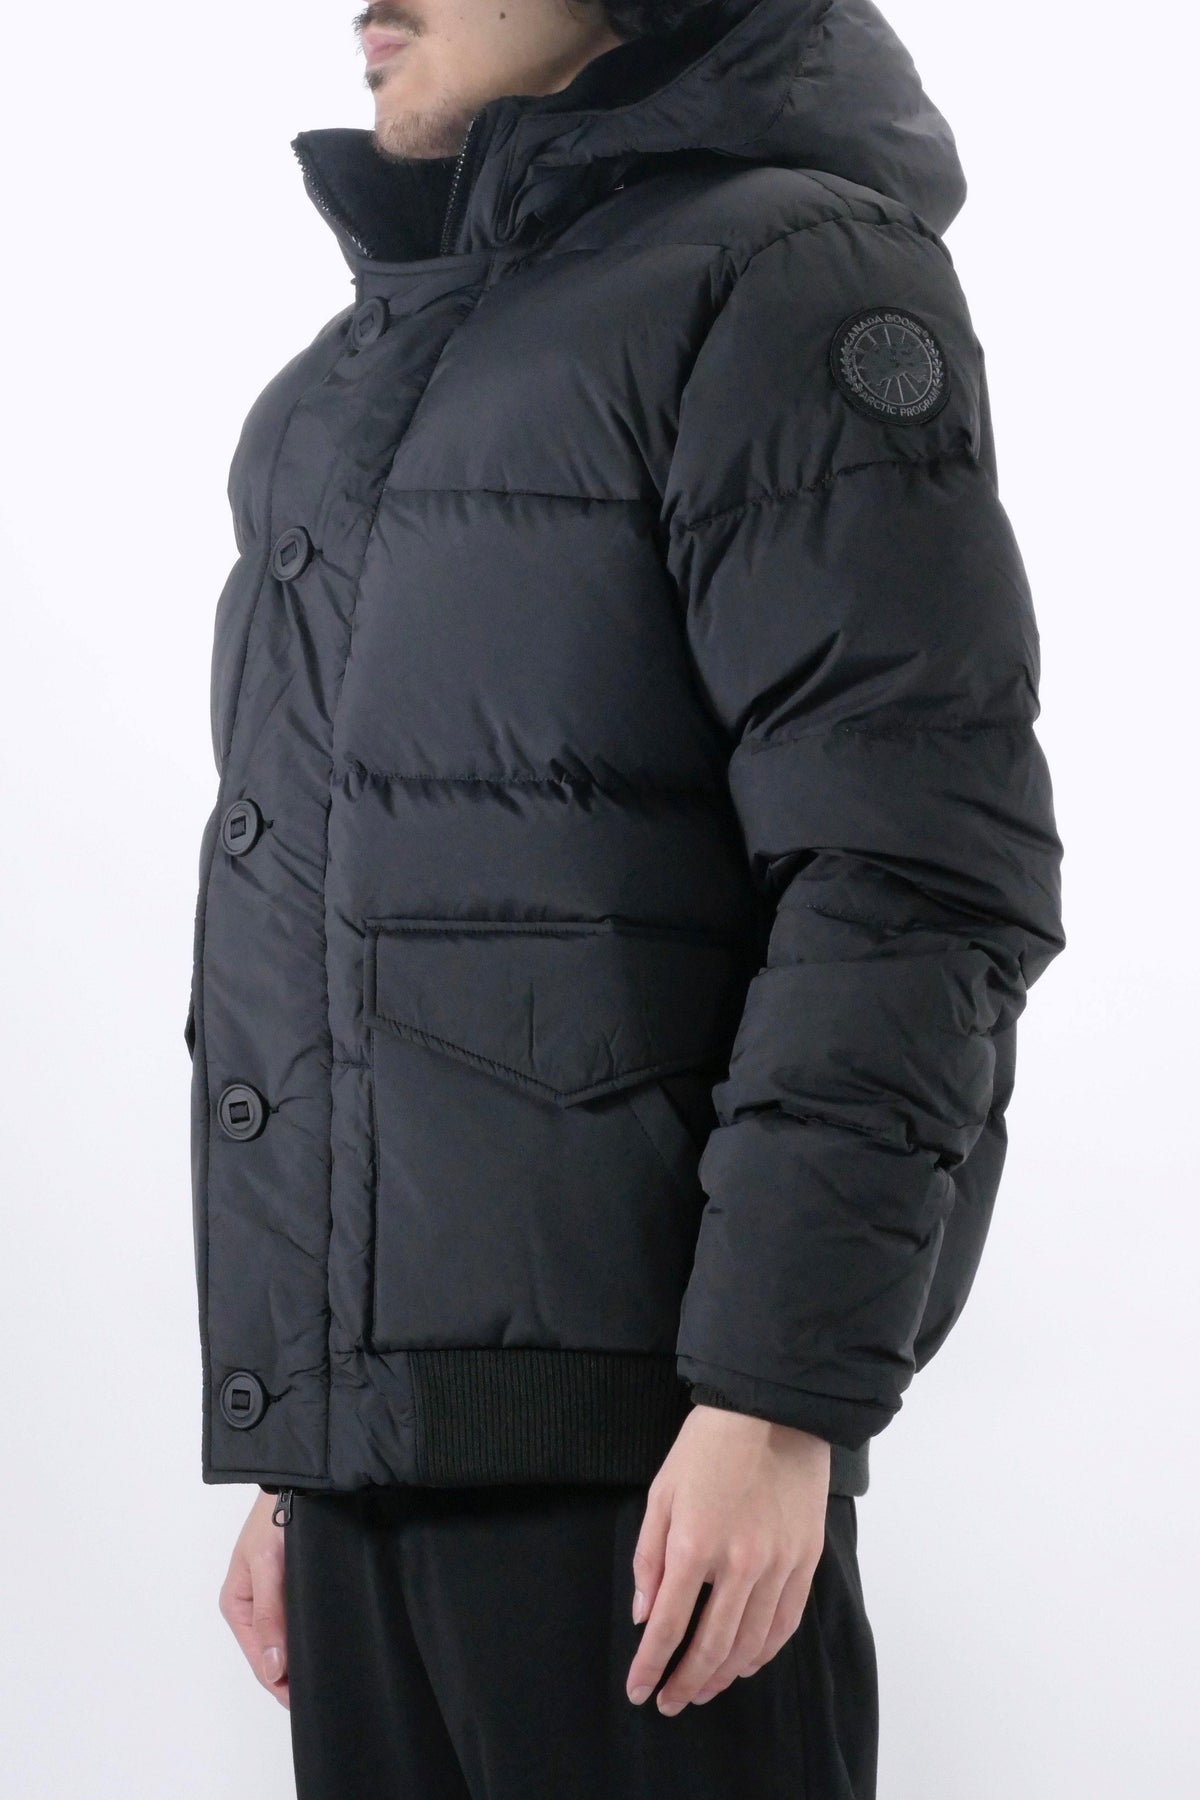 Canada Goose Mens Parka Ventoux Black Label - Matt Black